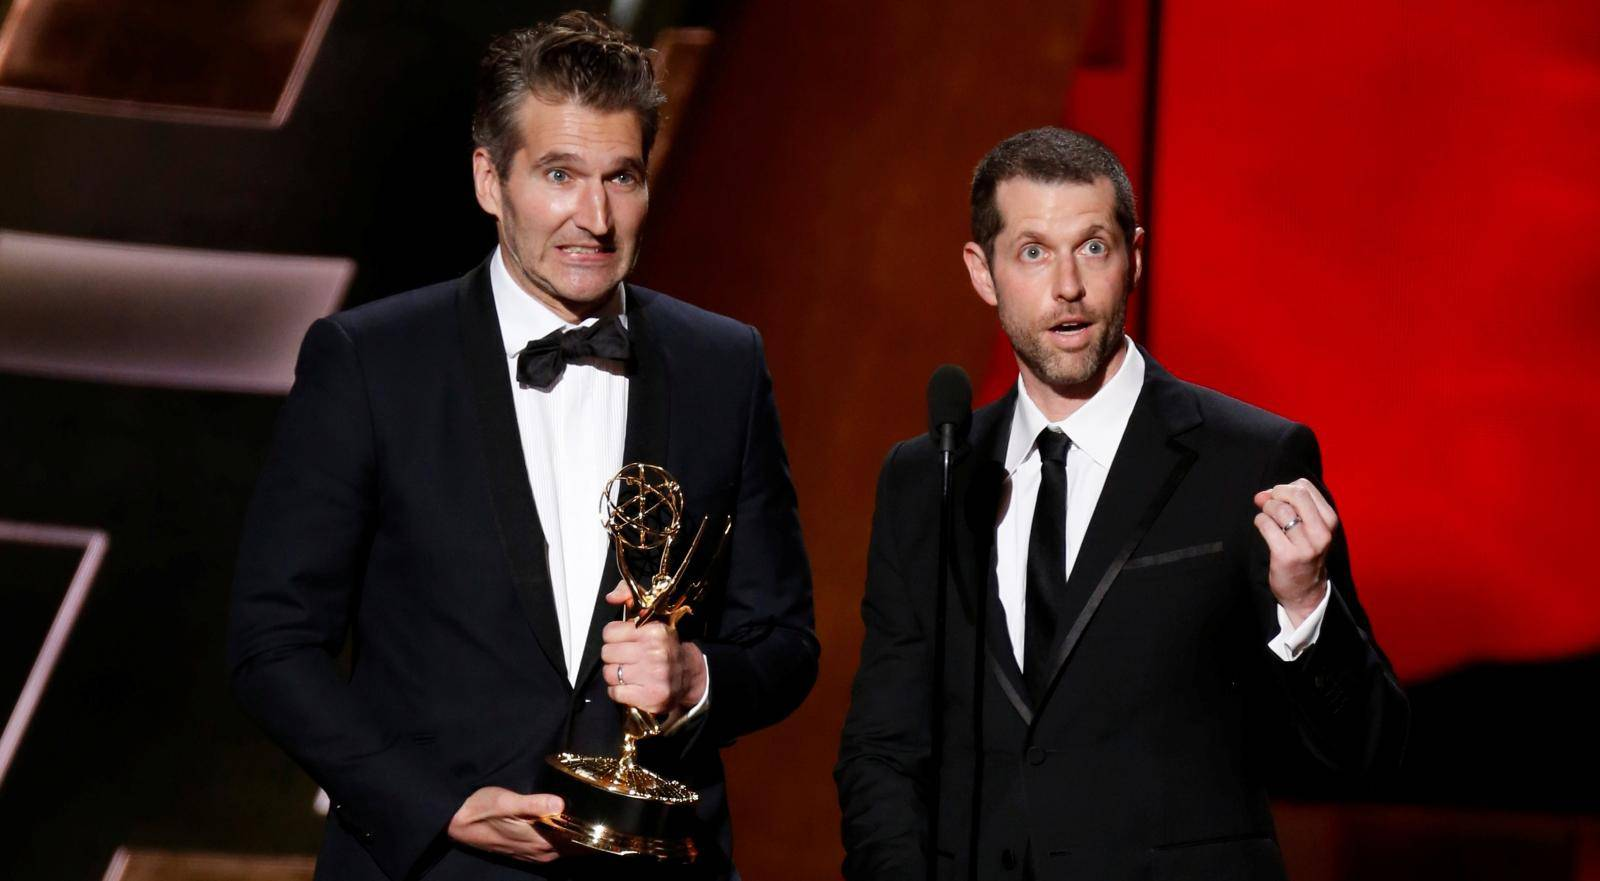 """FILE PHOTO: Benioff and Weiss accept the award for Outstanding Writing For A Drama Series for HBO's """"Game of Thrones"""" at the 67th Primetime Emmy Awards in Los Angeles"""